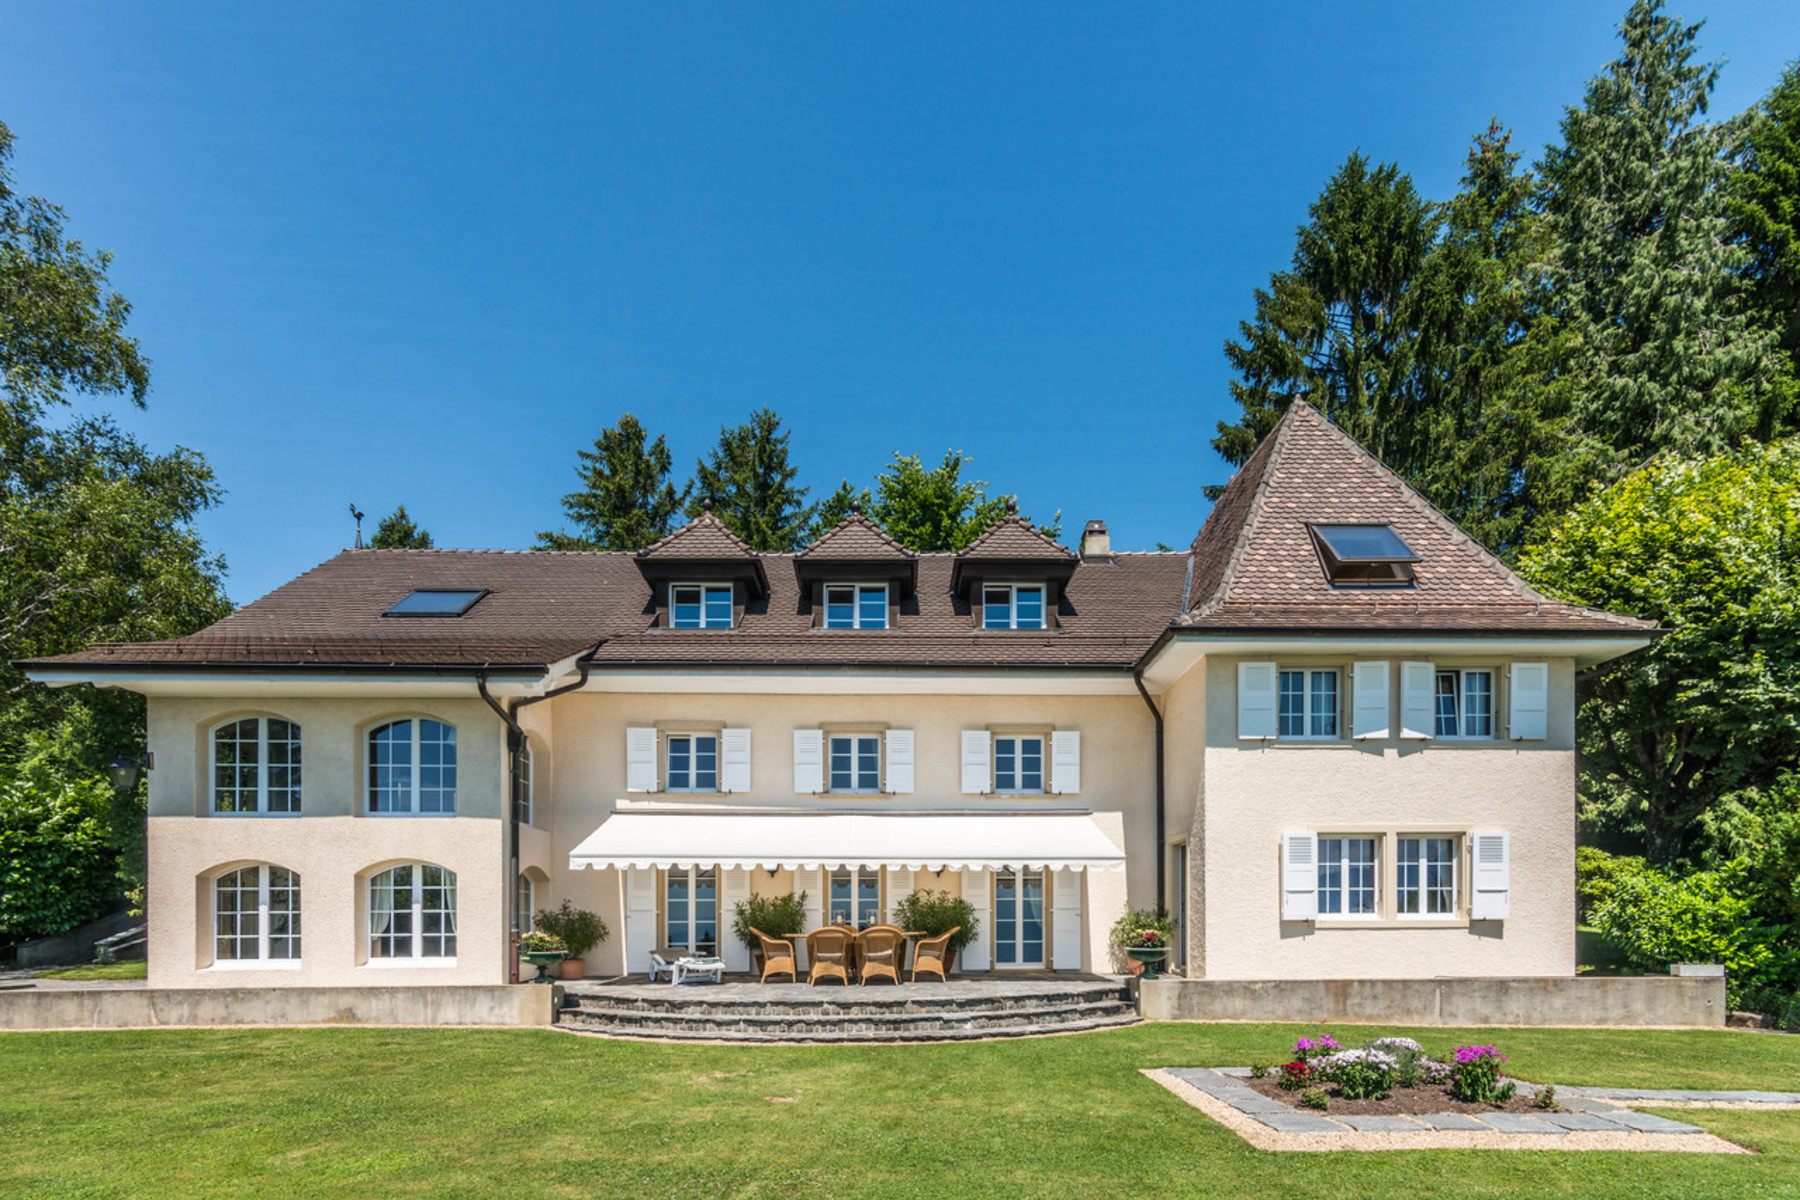 واحد منزل الأسرة للـ Sale في Charming property overlooking the UNESCO World Heritage Site Grandvaux Grandvaux, Vaud, 1091 Switzerland